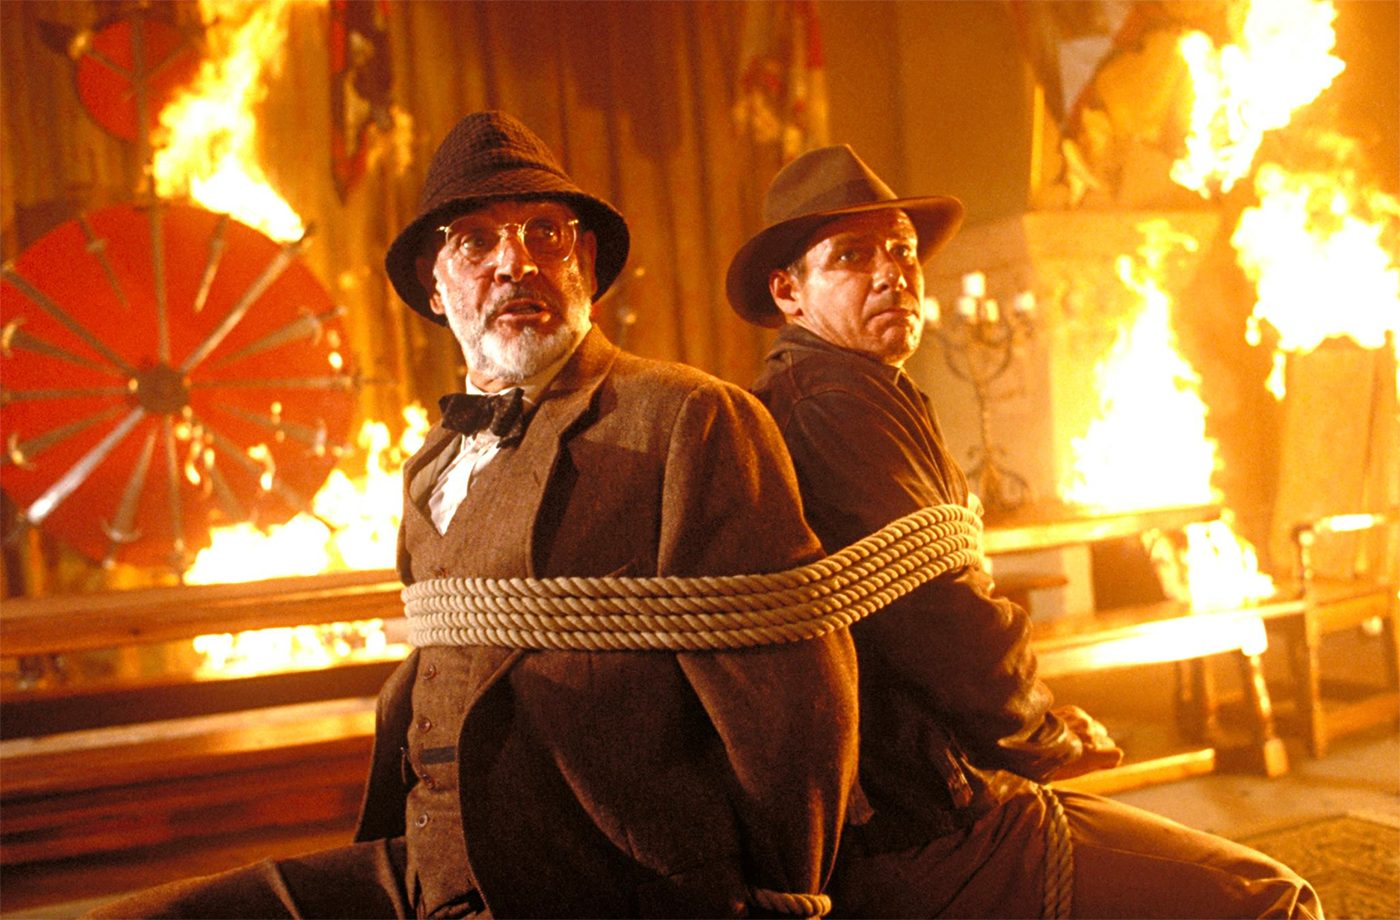 Best action movies on Netflix Canada - Indiana Jones and the Last Crusade